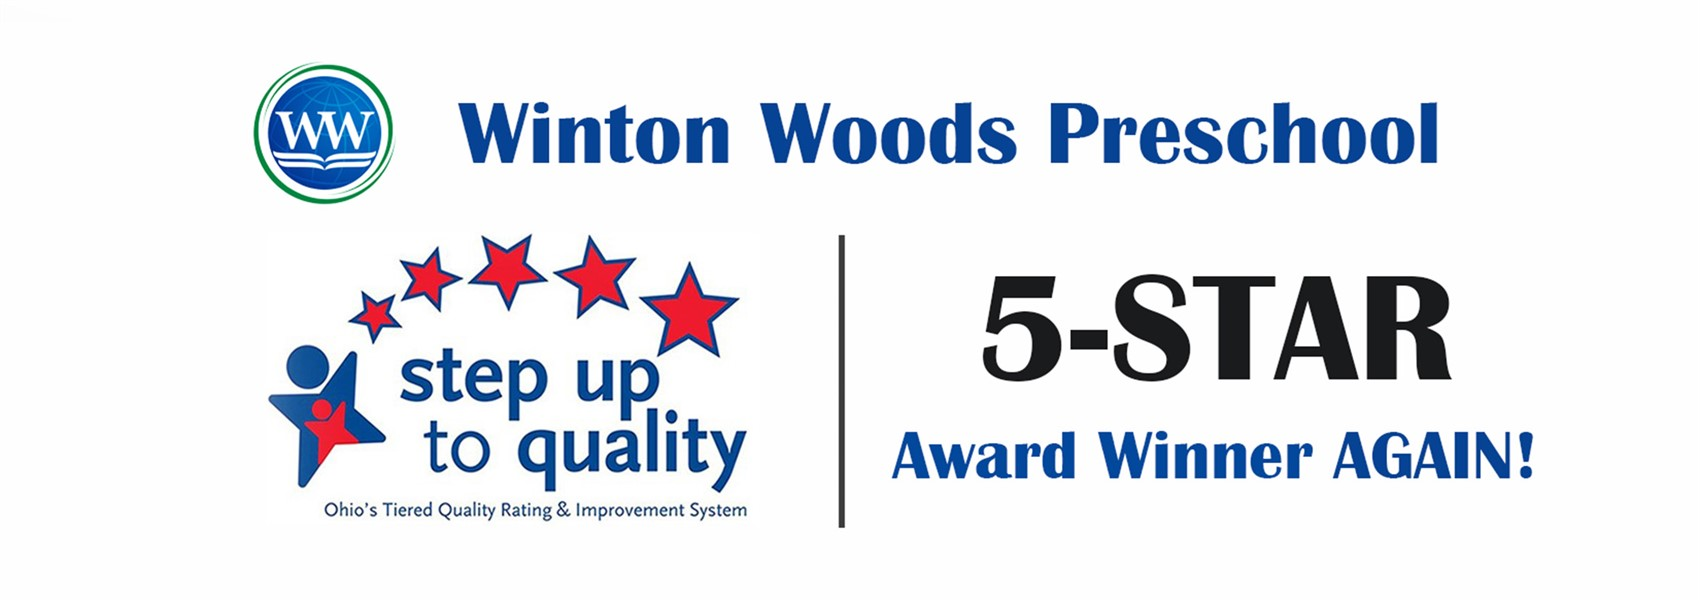 5 star award winner again for preschool